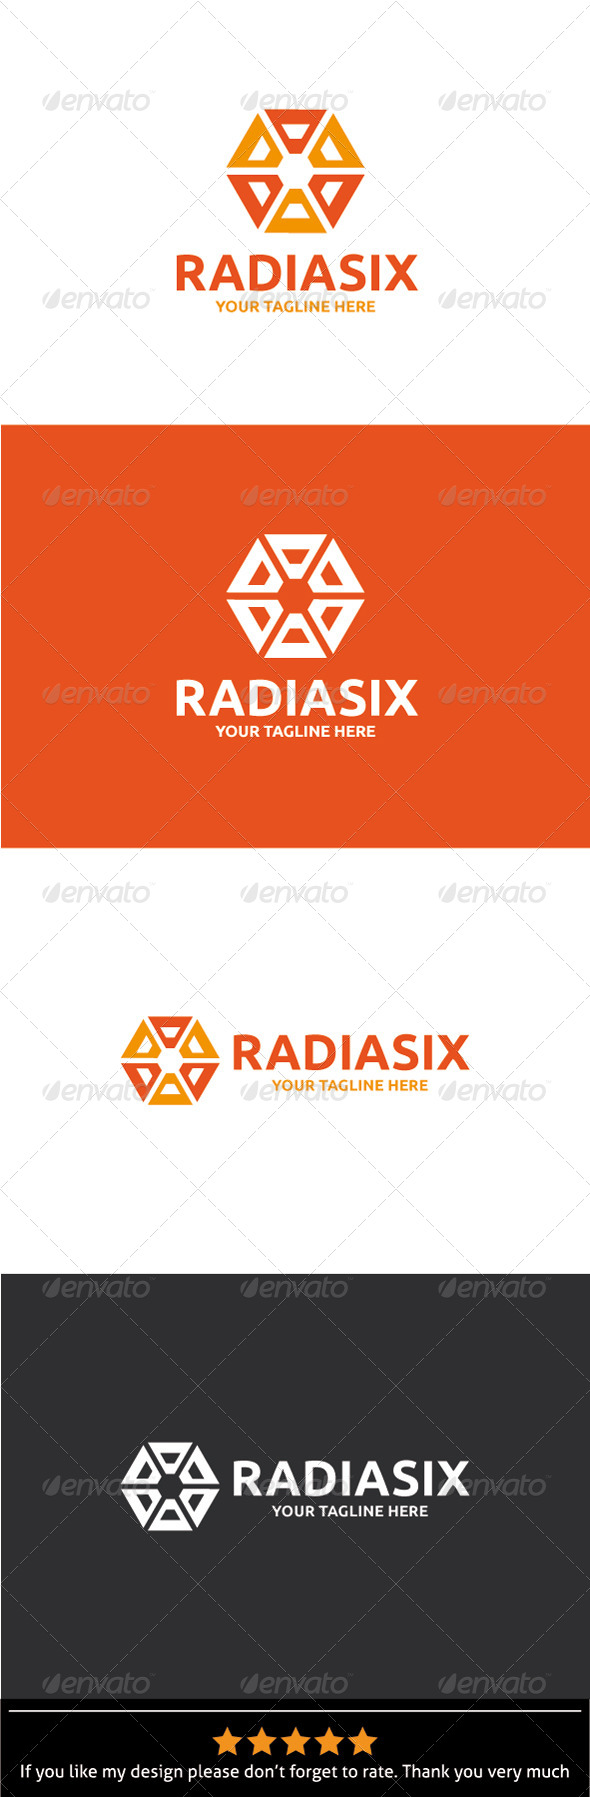 GraphicRiver Radiasix Logo Template 8469546